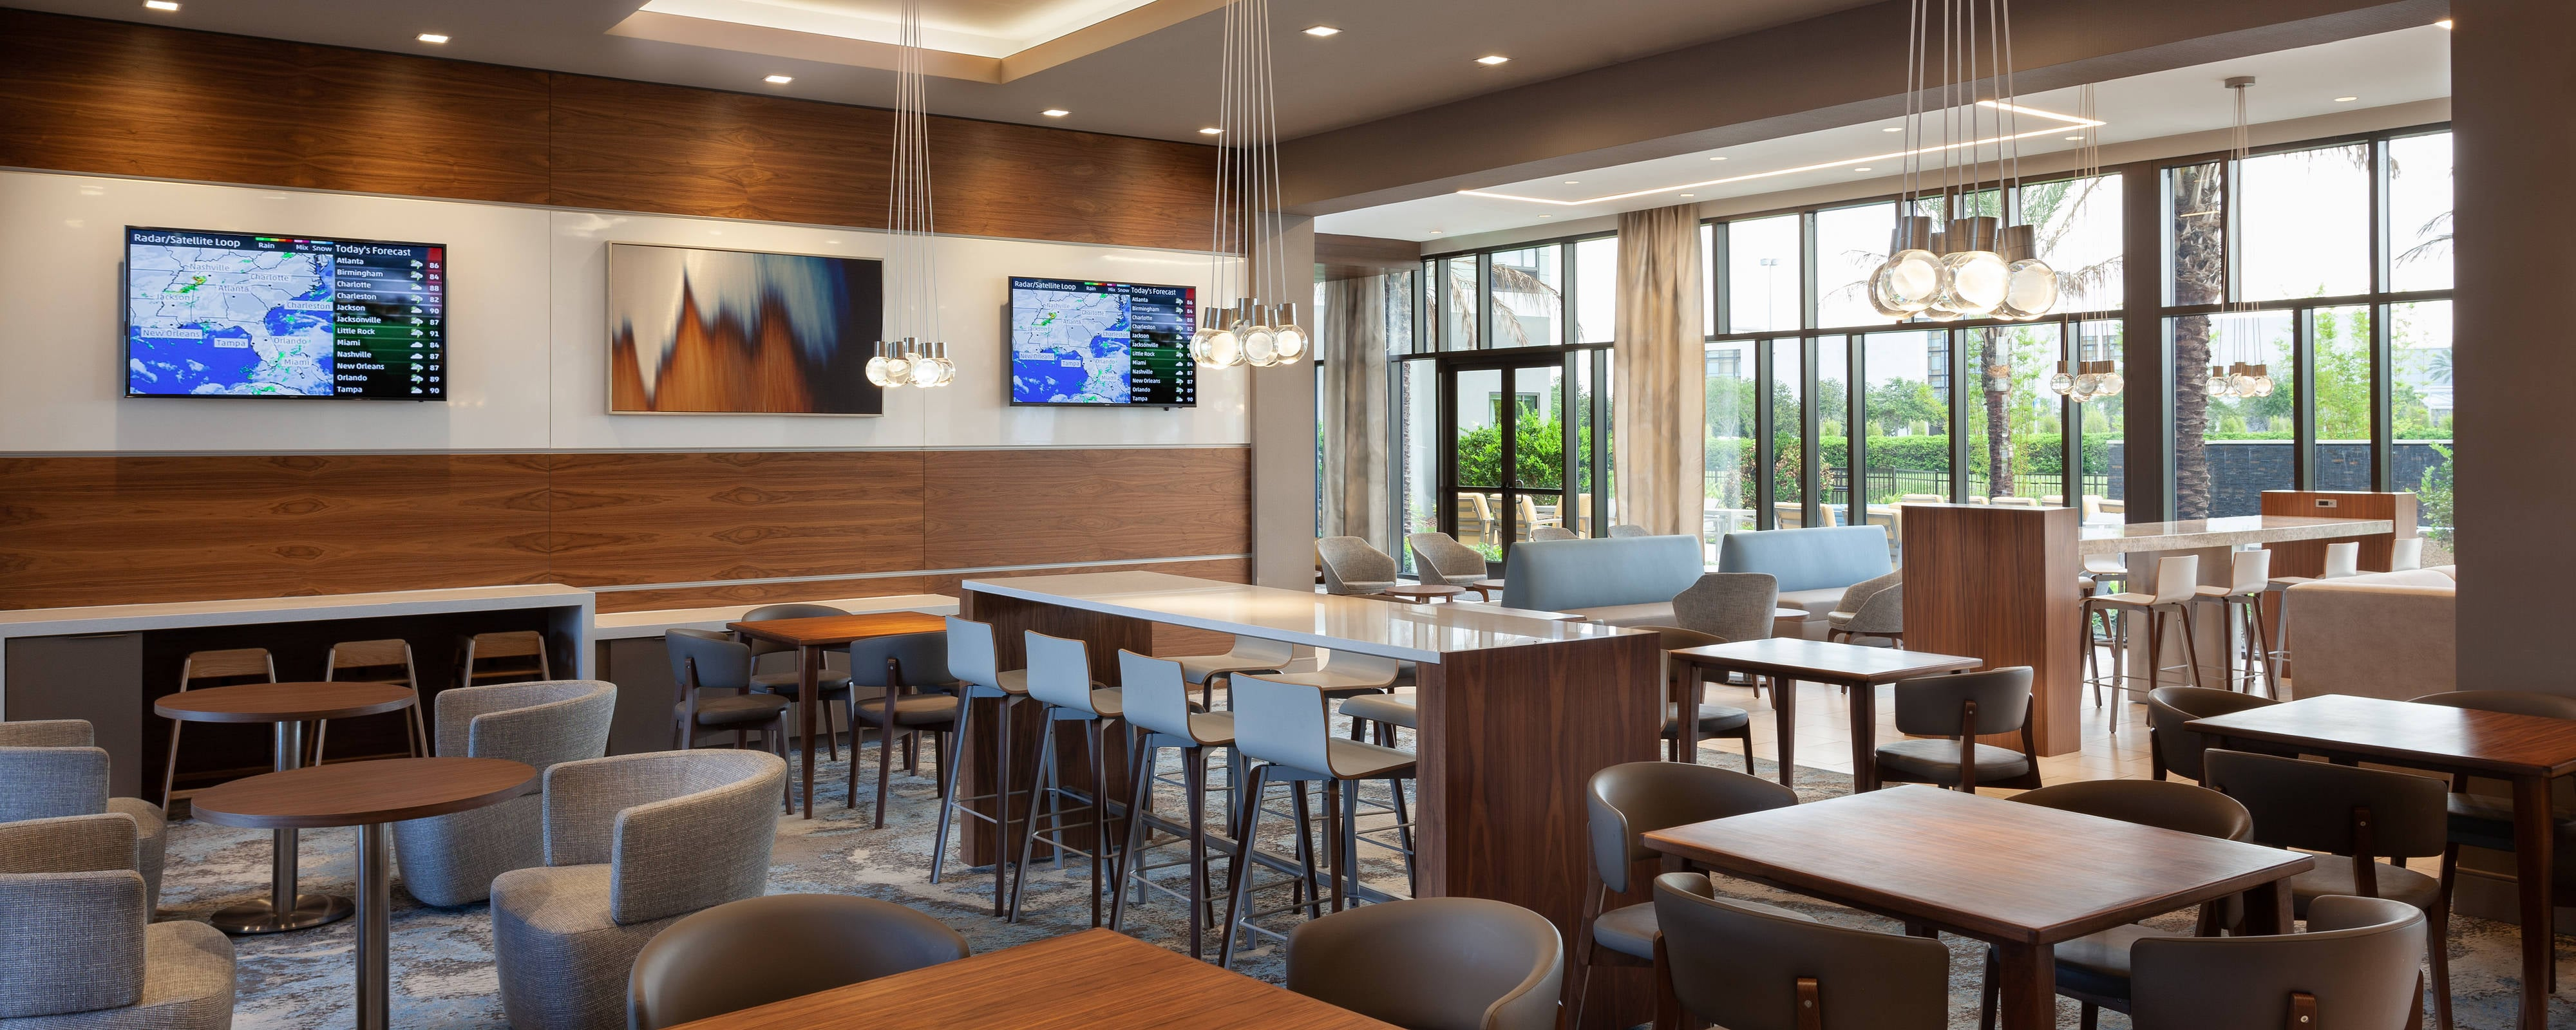 Orlando Hotel With Free Breakfast Buffet Residence Inn